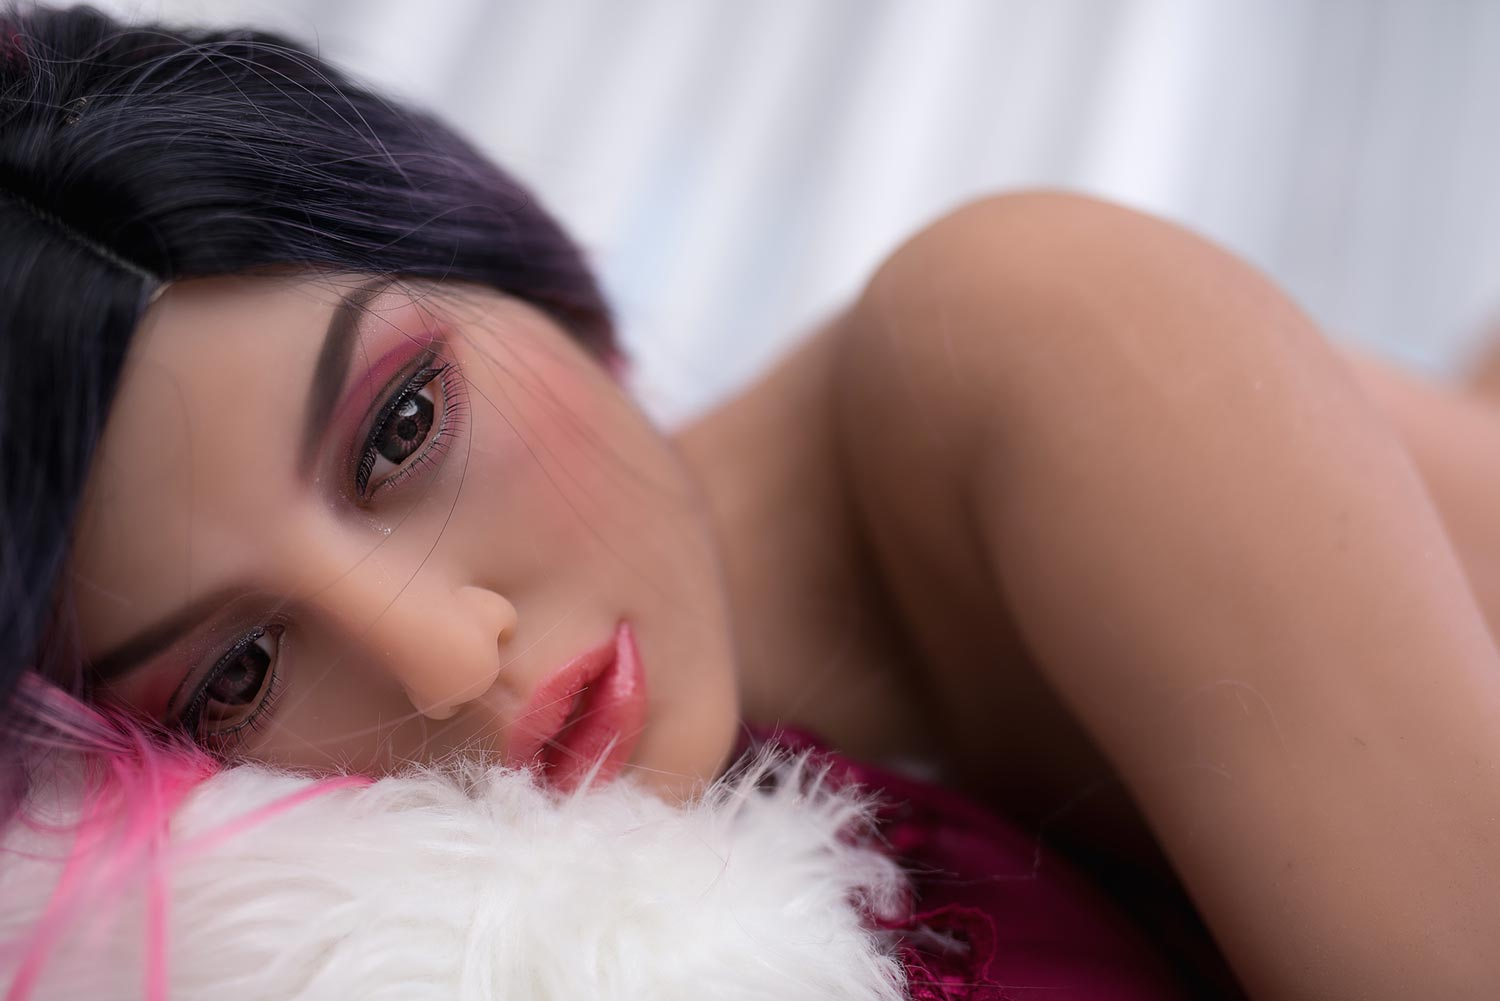 Big breasted sex doll with brown eyes